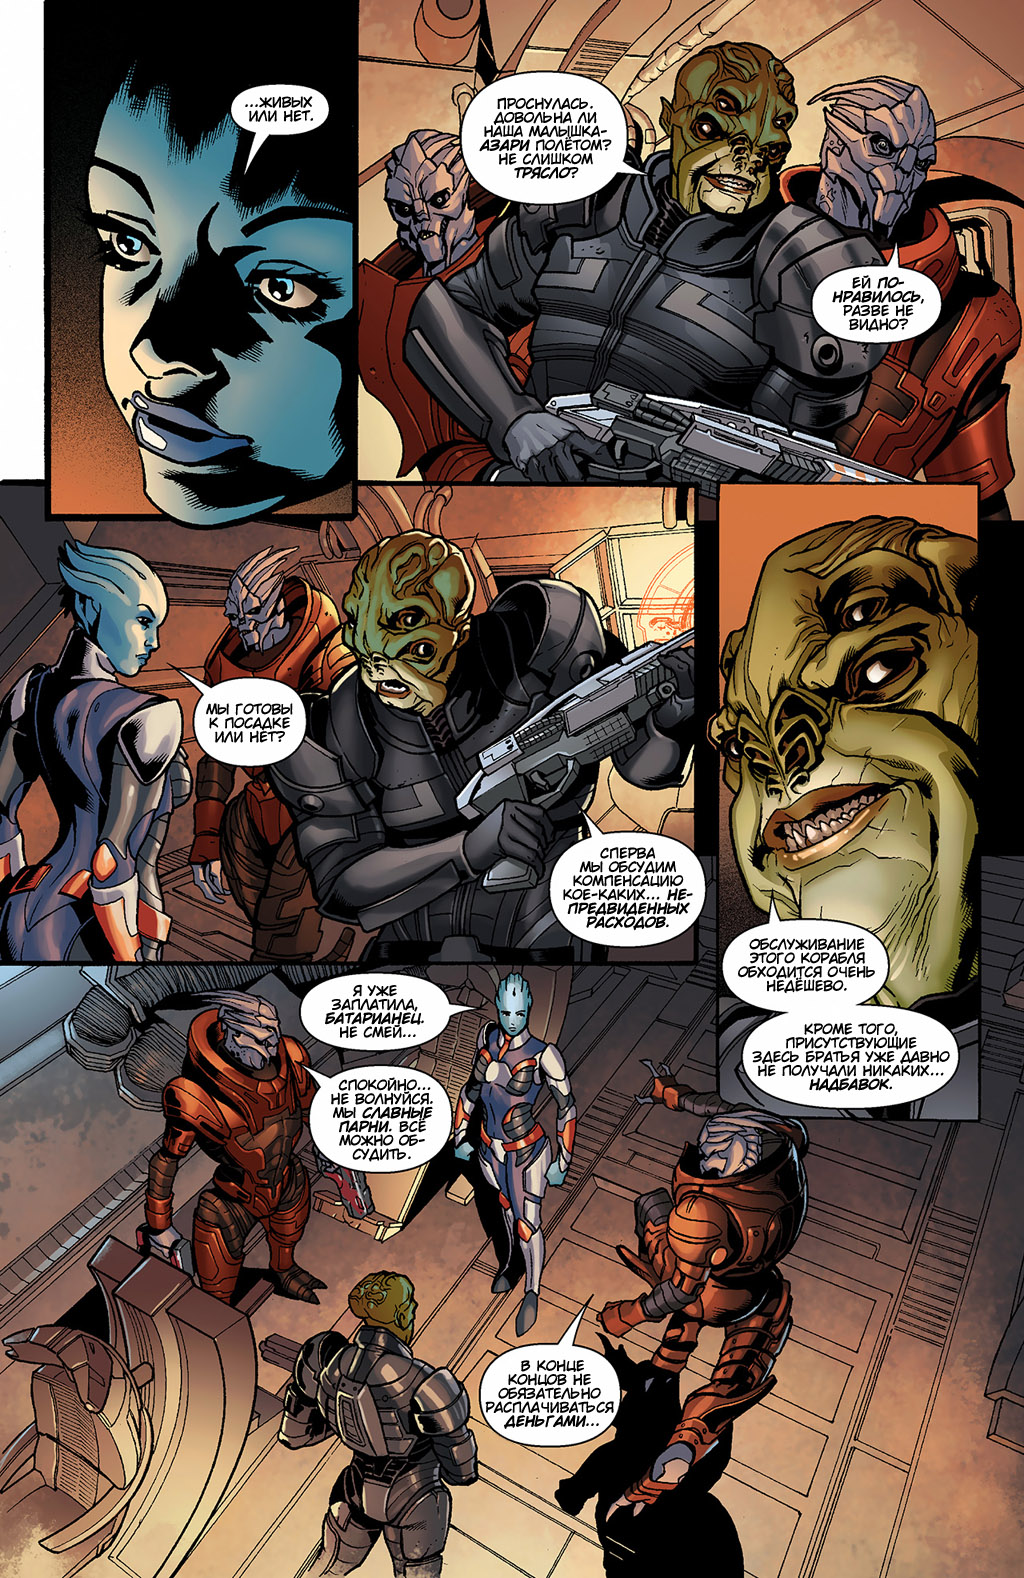 Mass Effect Redemption (part 1)